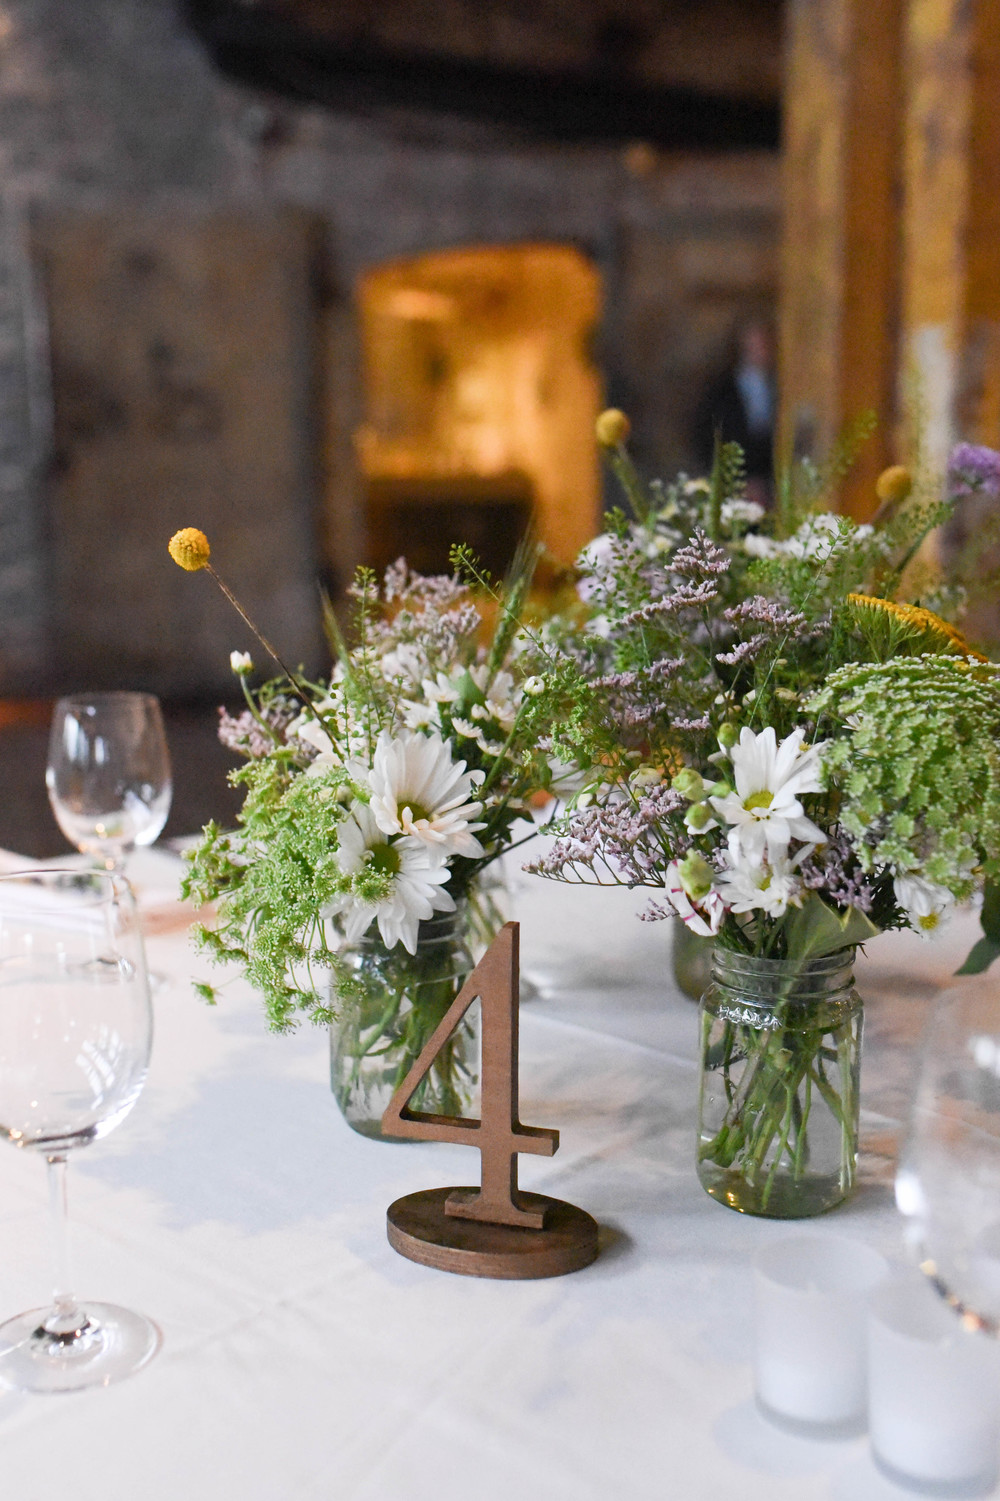 Yellow and lavender Wildflower centerpiece in rustic mason jar. Pale yellow, lavender, blush pink and orange flowers. Underrated and beautiful flowers. Greenpoint Loft wedding, Brooklyn. Flowers by Rosehip Social, Graham Ave, Brooklyn.